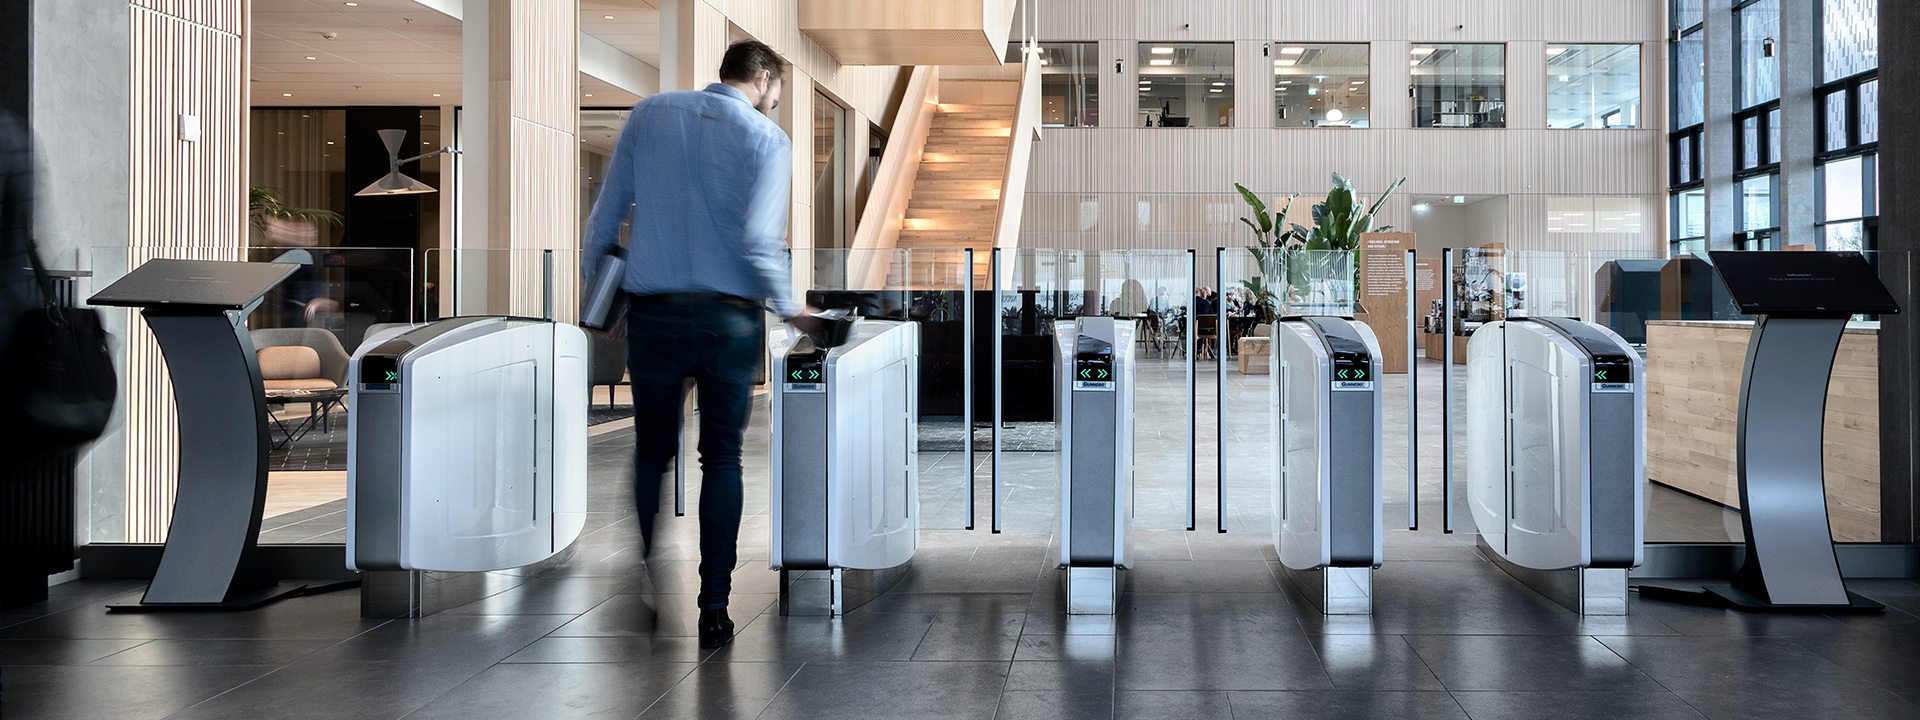 Gunnebo Speed Gates at SWECO, Copenhagen